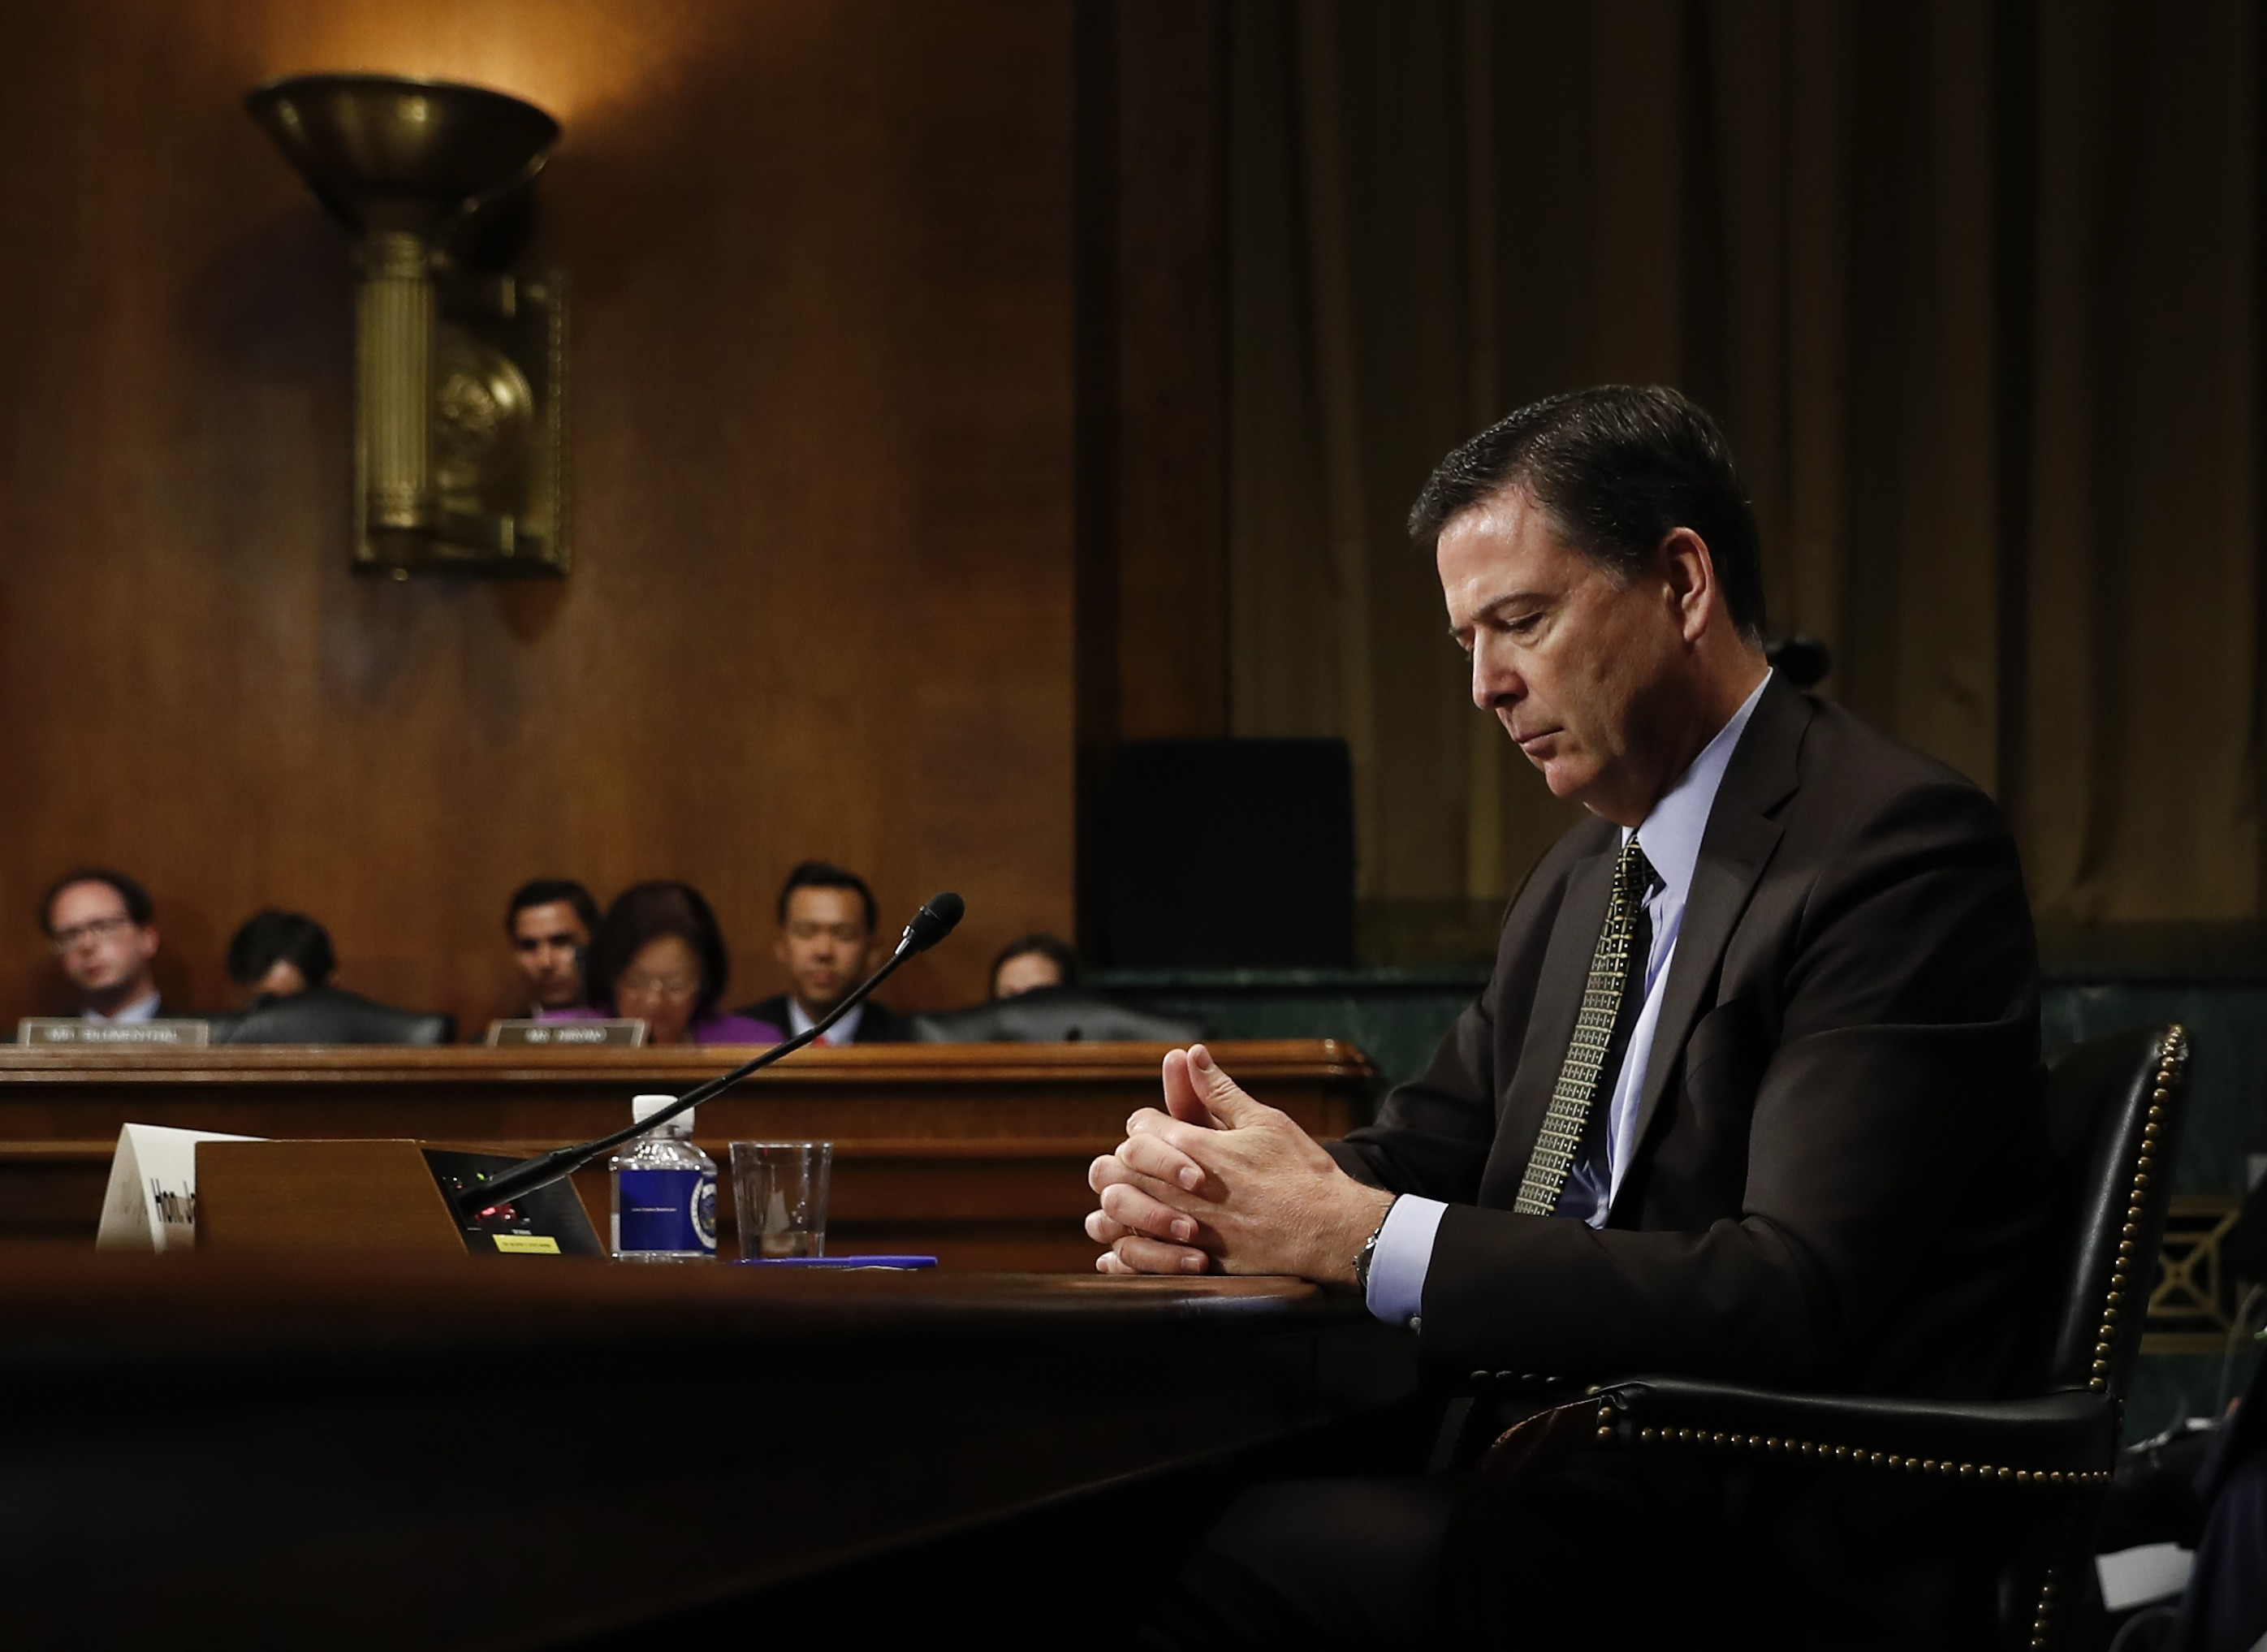 Compromise reached on Republican demands for James Comey testimony